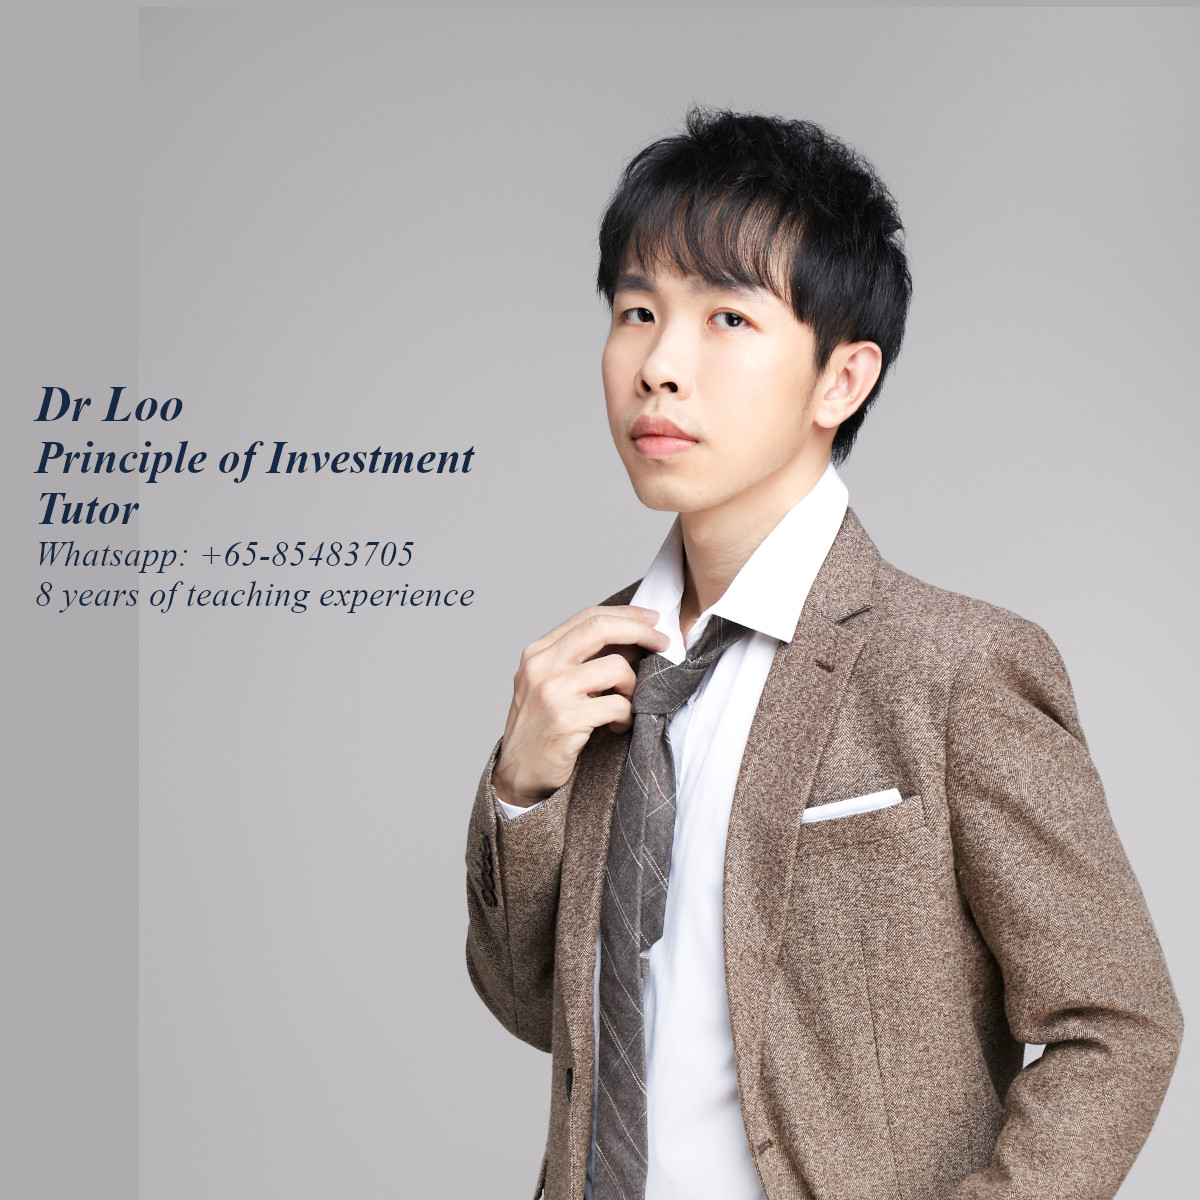 Principle of Investment Tutor in Singapore